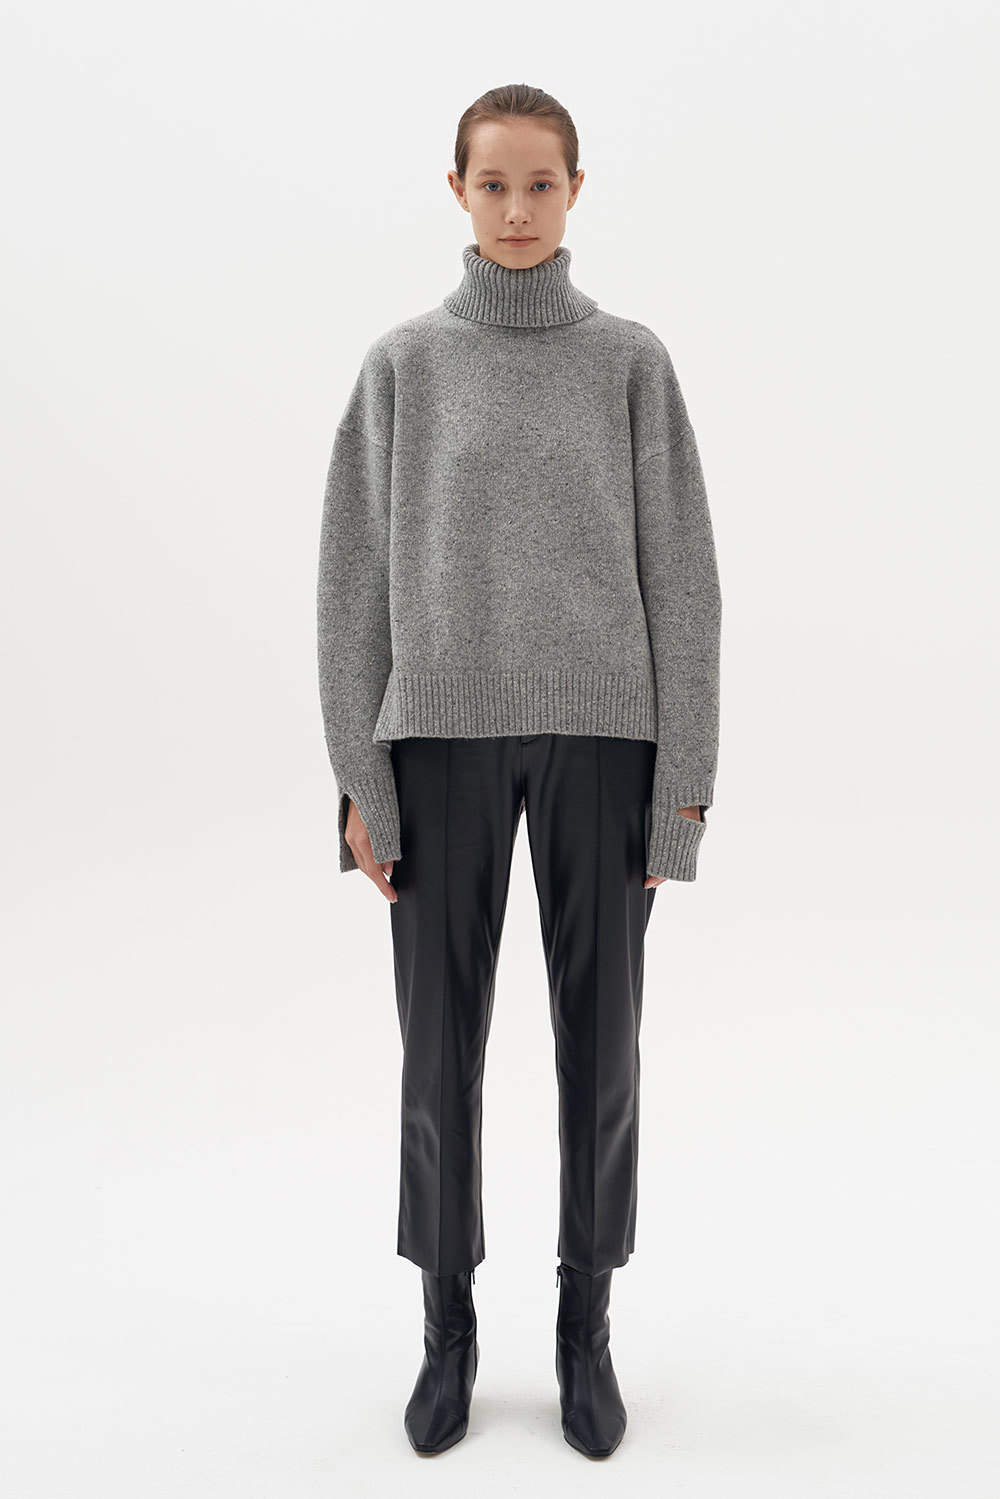 NEP TURTLE NECK KNIT